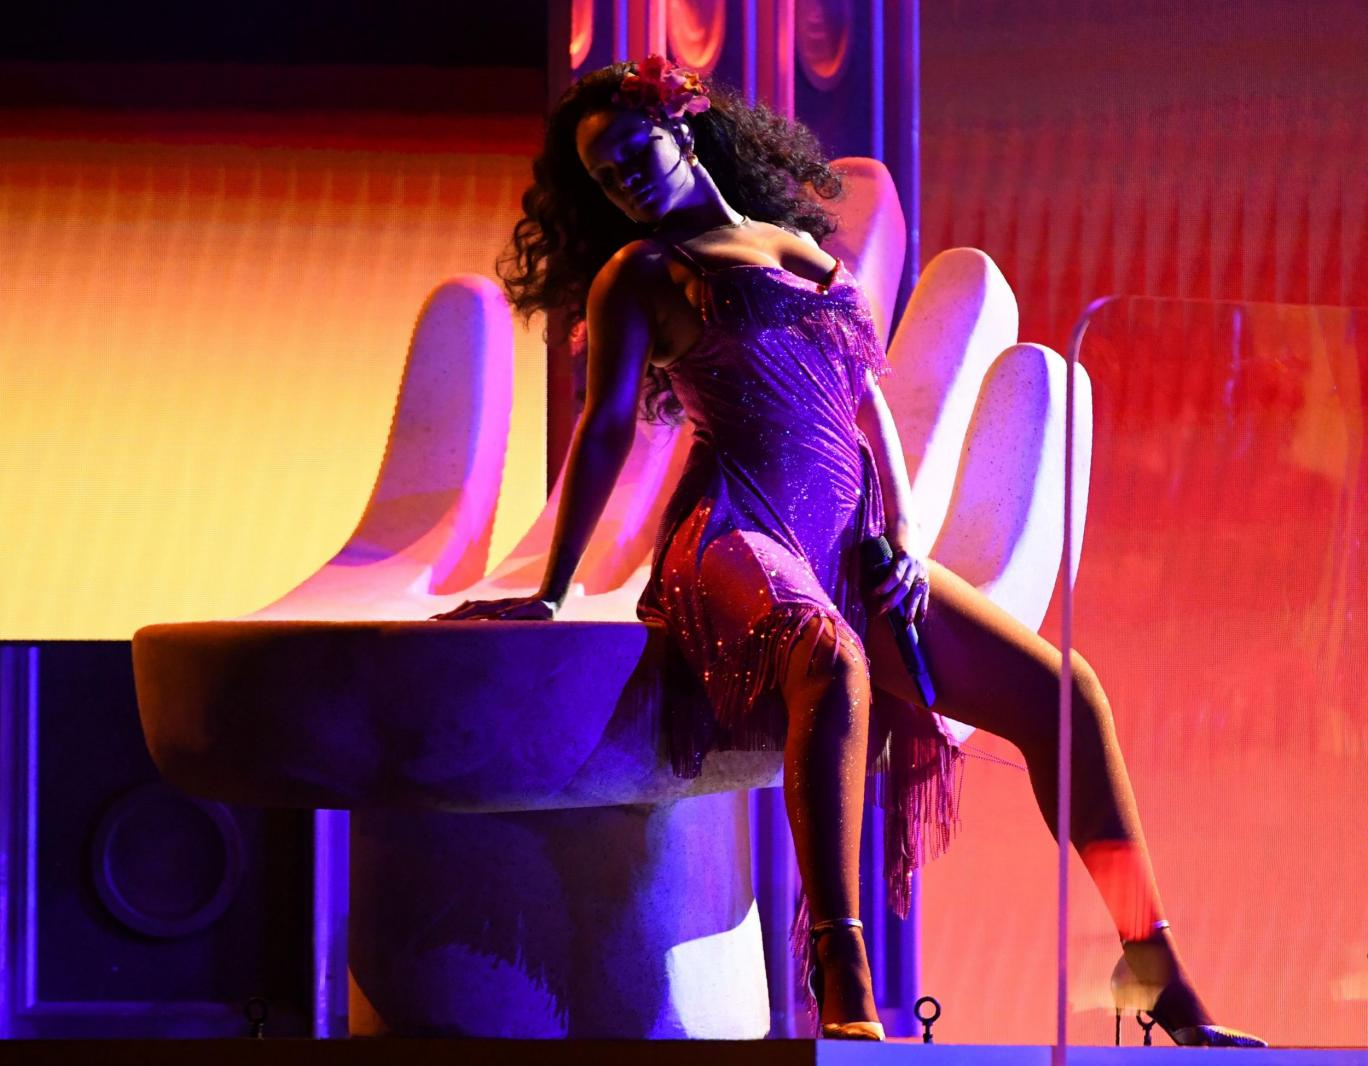 Rihanna's raunchy performance of